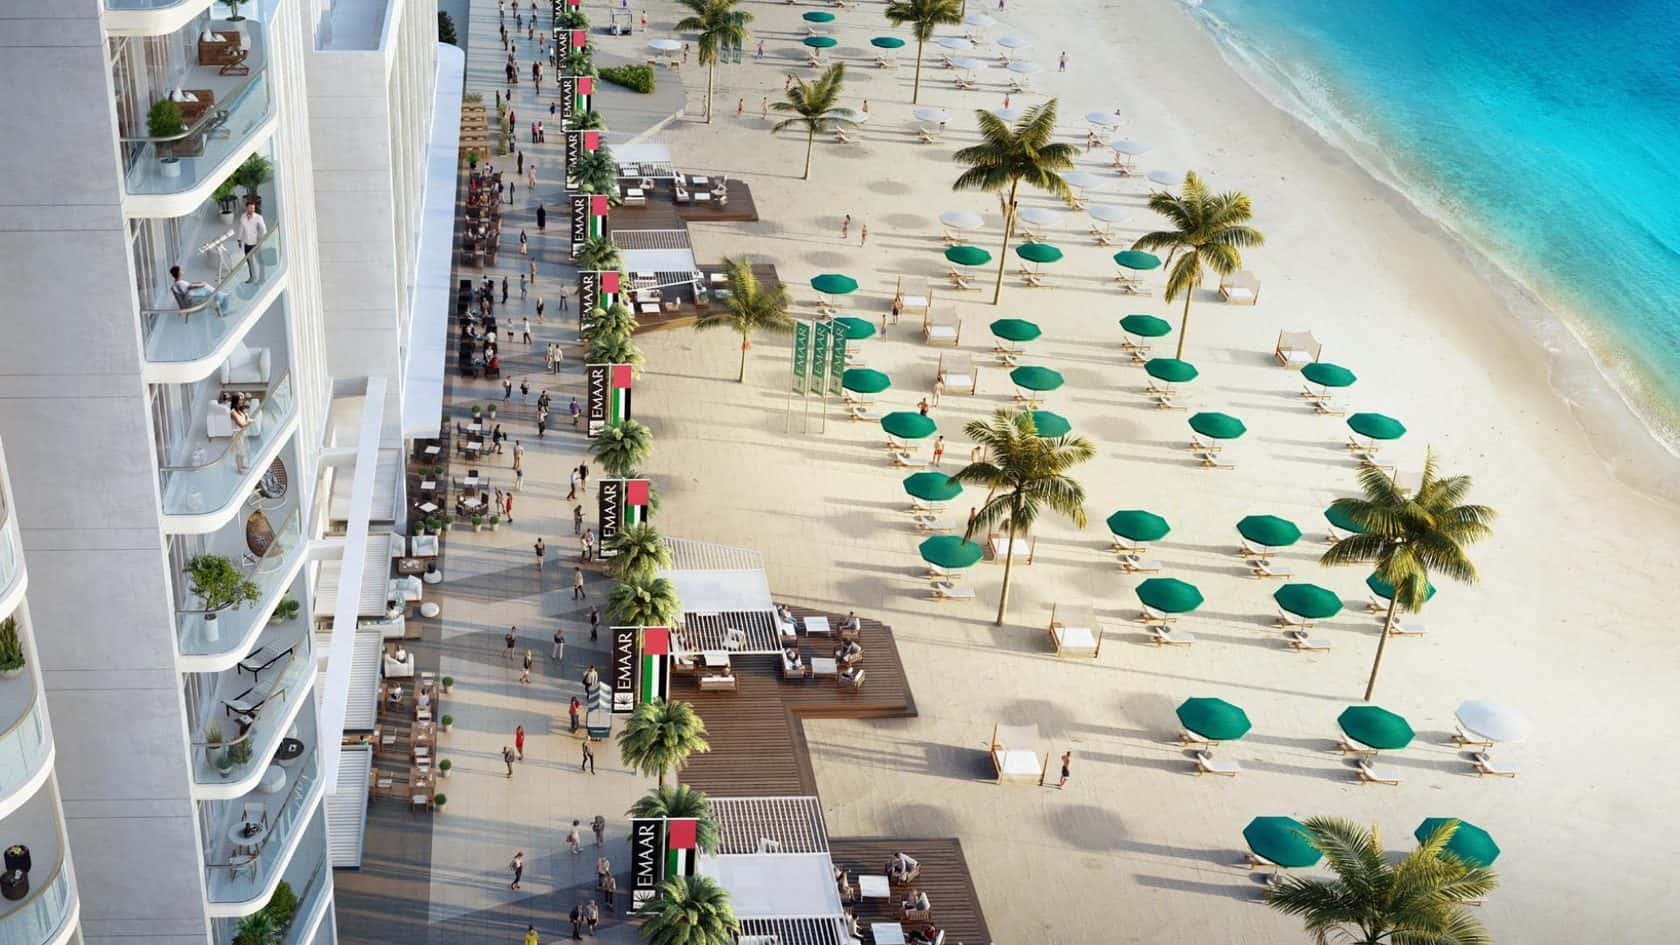 Attractions & Entertainment Facilities in Emaar Beachfront